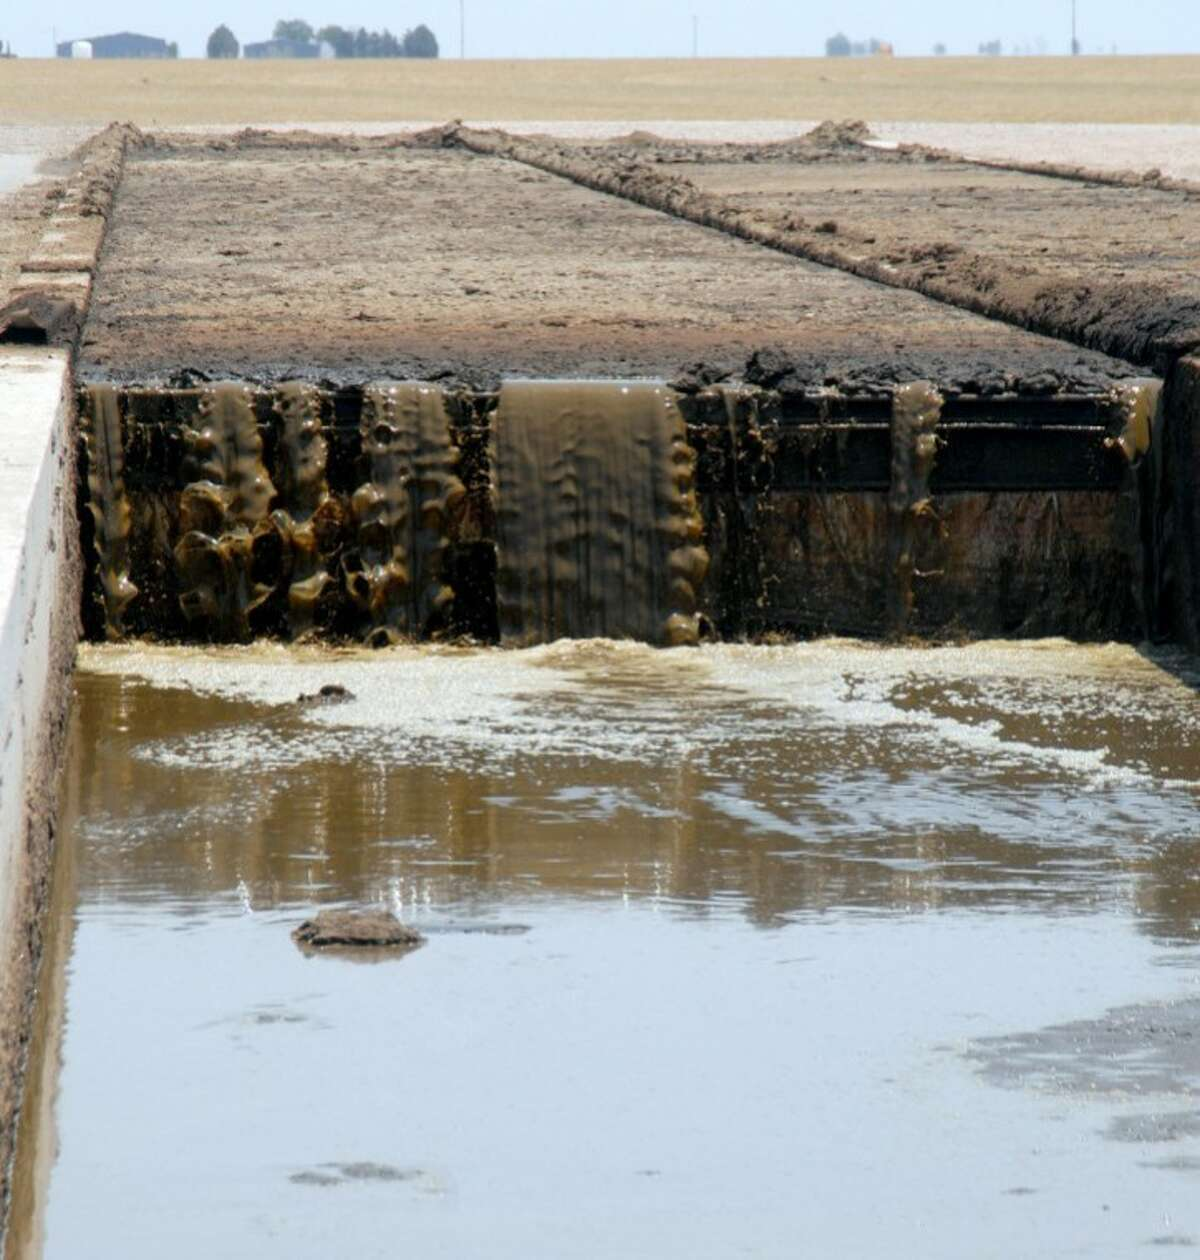 Water flows into a settling basin as part of the recycling process at Vista Grande Dairy south of Plainview.